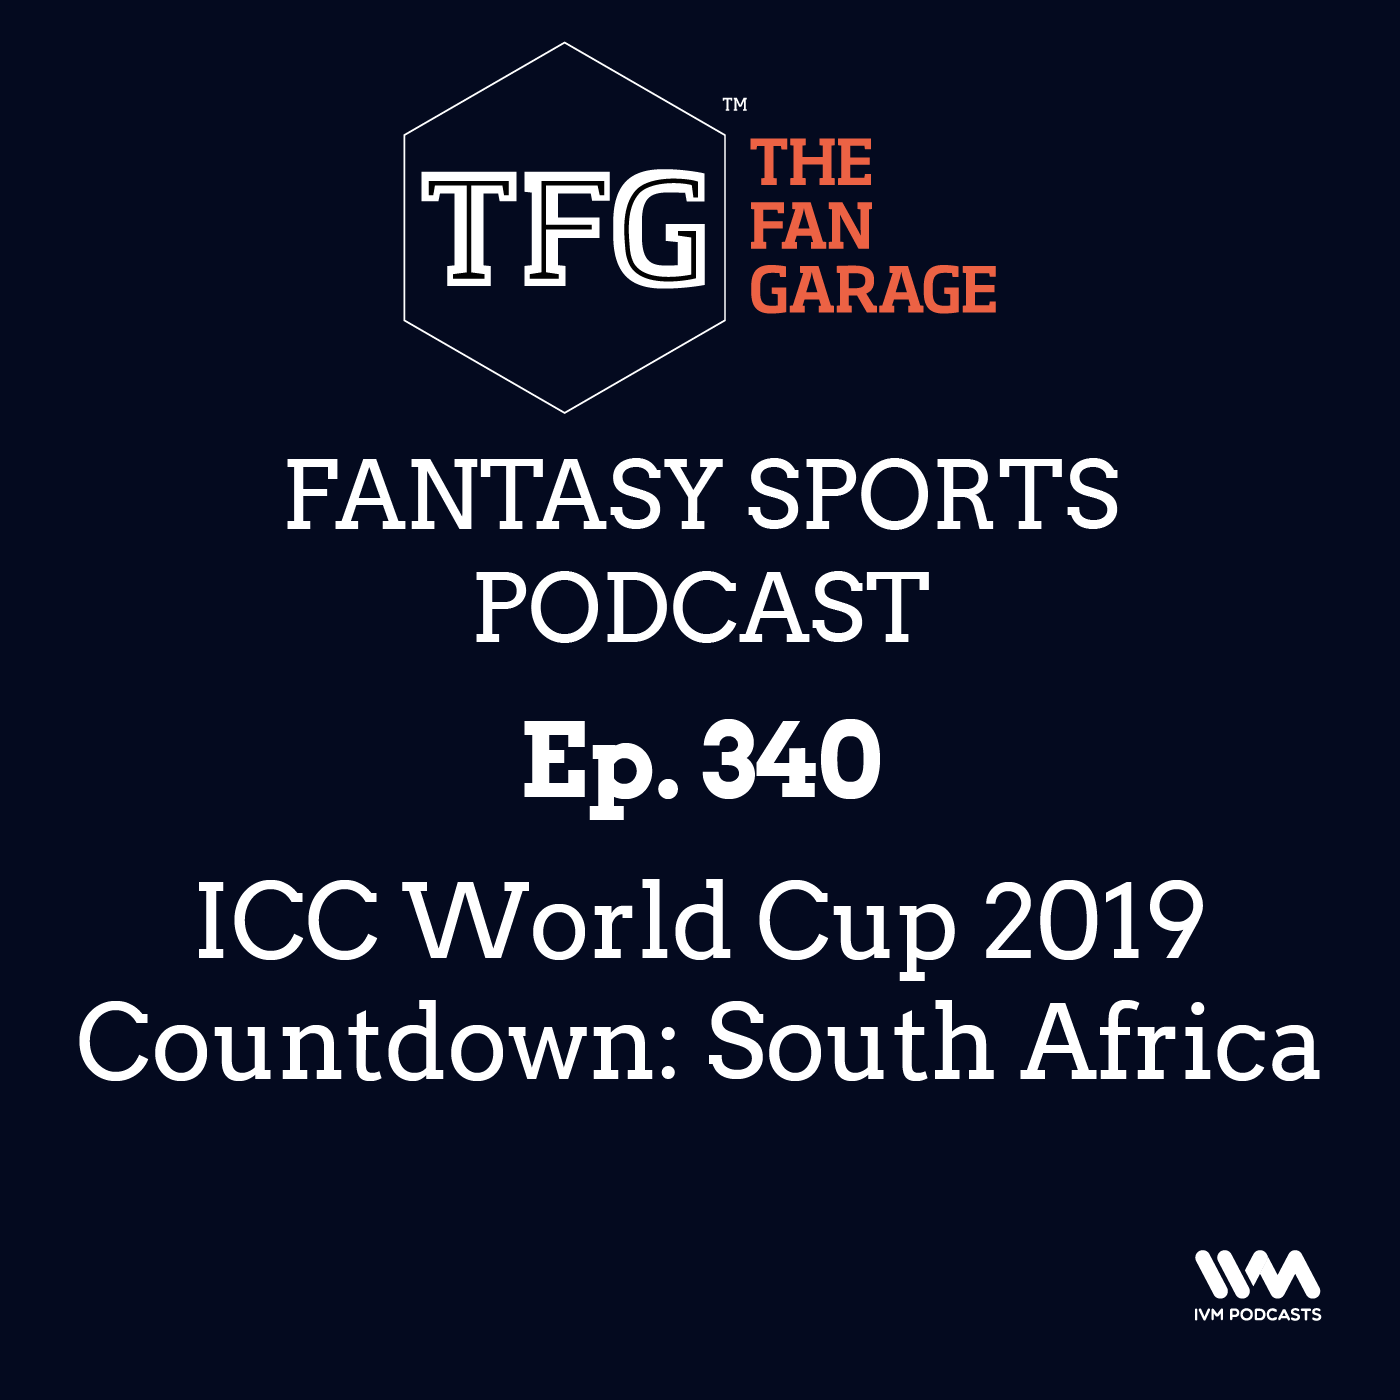 TFG Fantasy Sports Podcast Ep. 340: ICC World Cup 2019 Countdown: South Africa